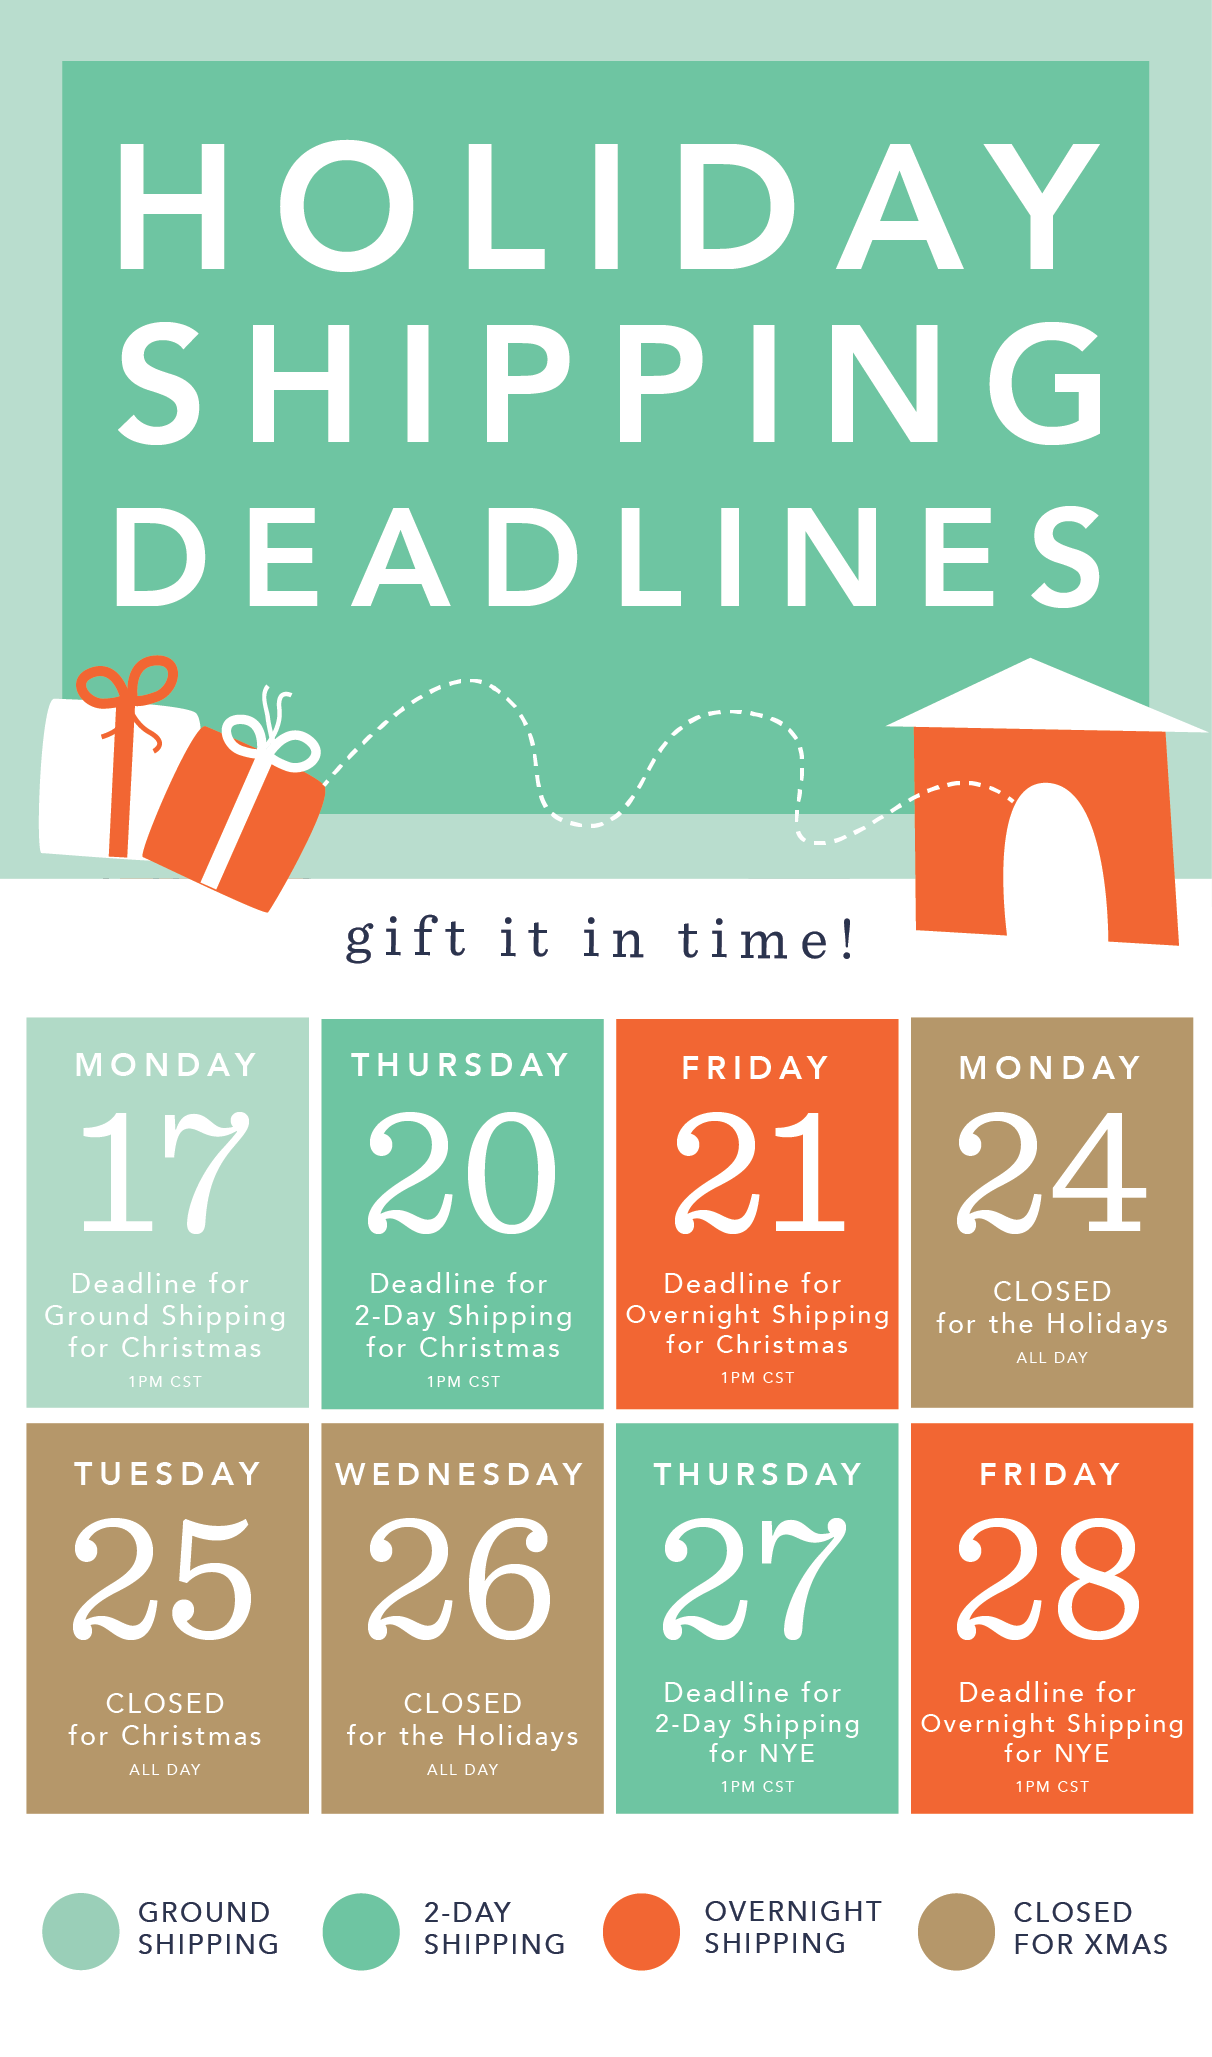 HolidayShippingDeadlines-Updated.png